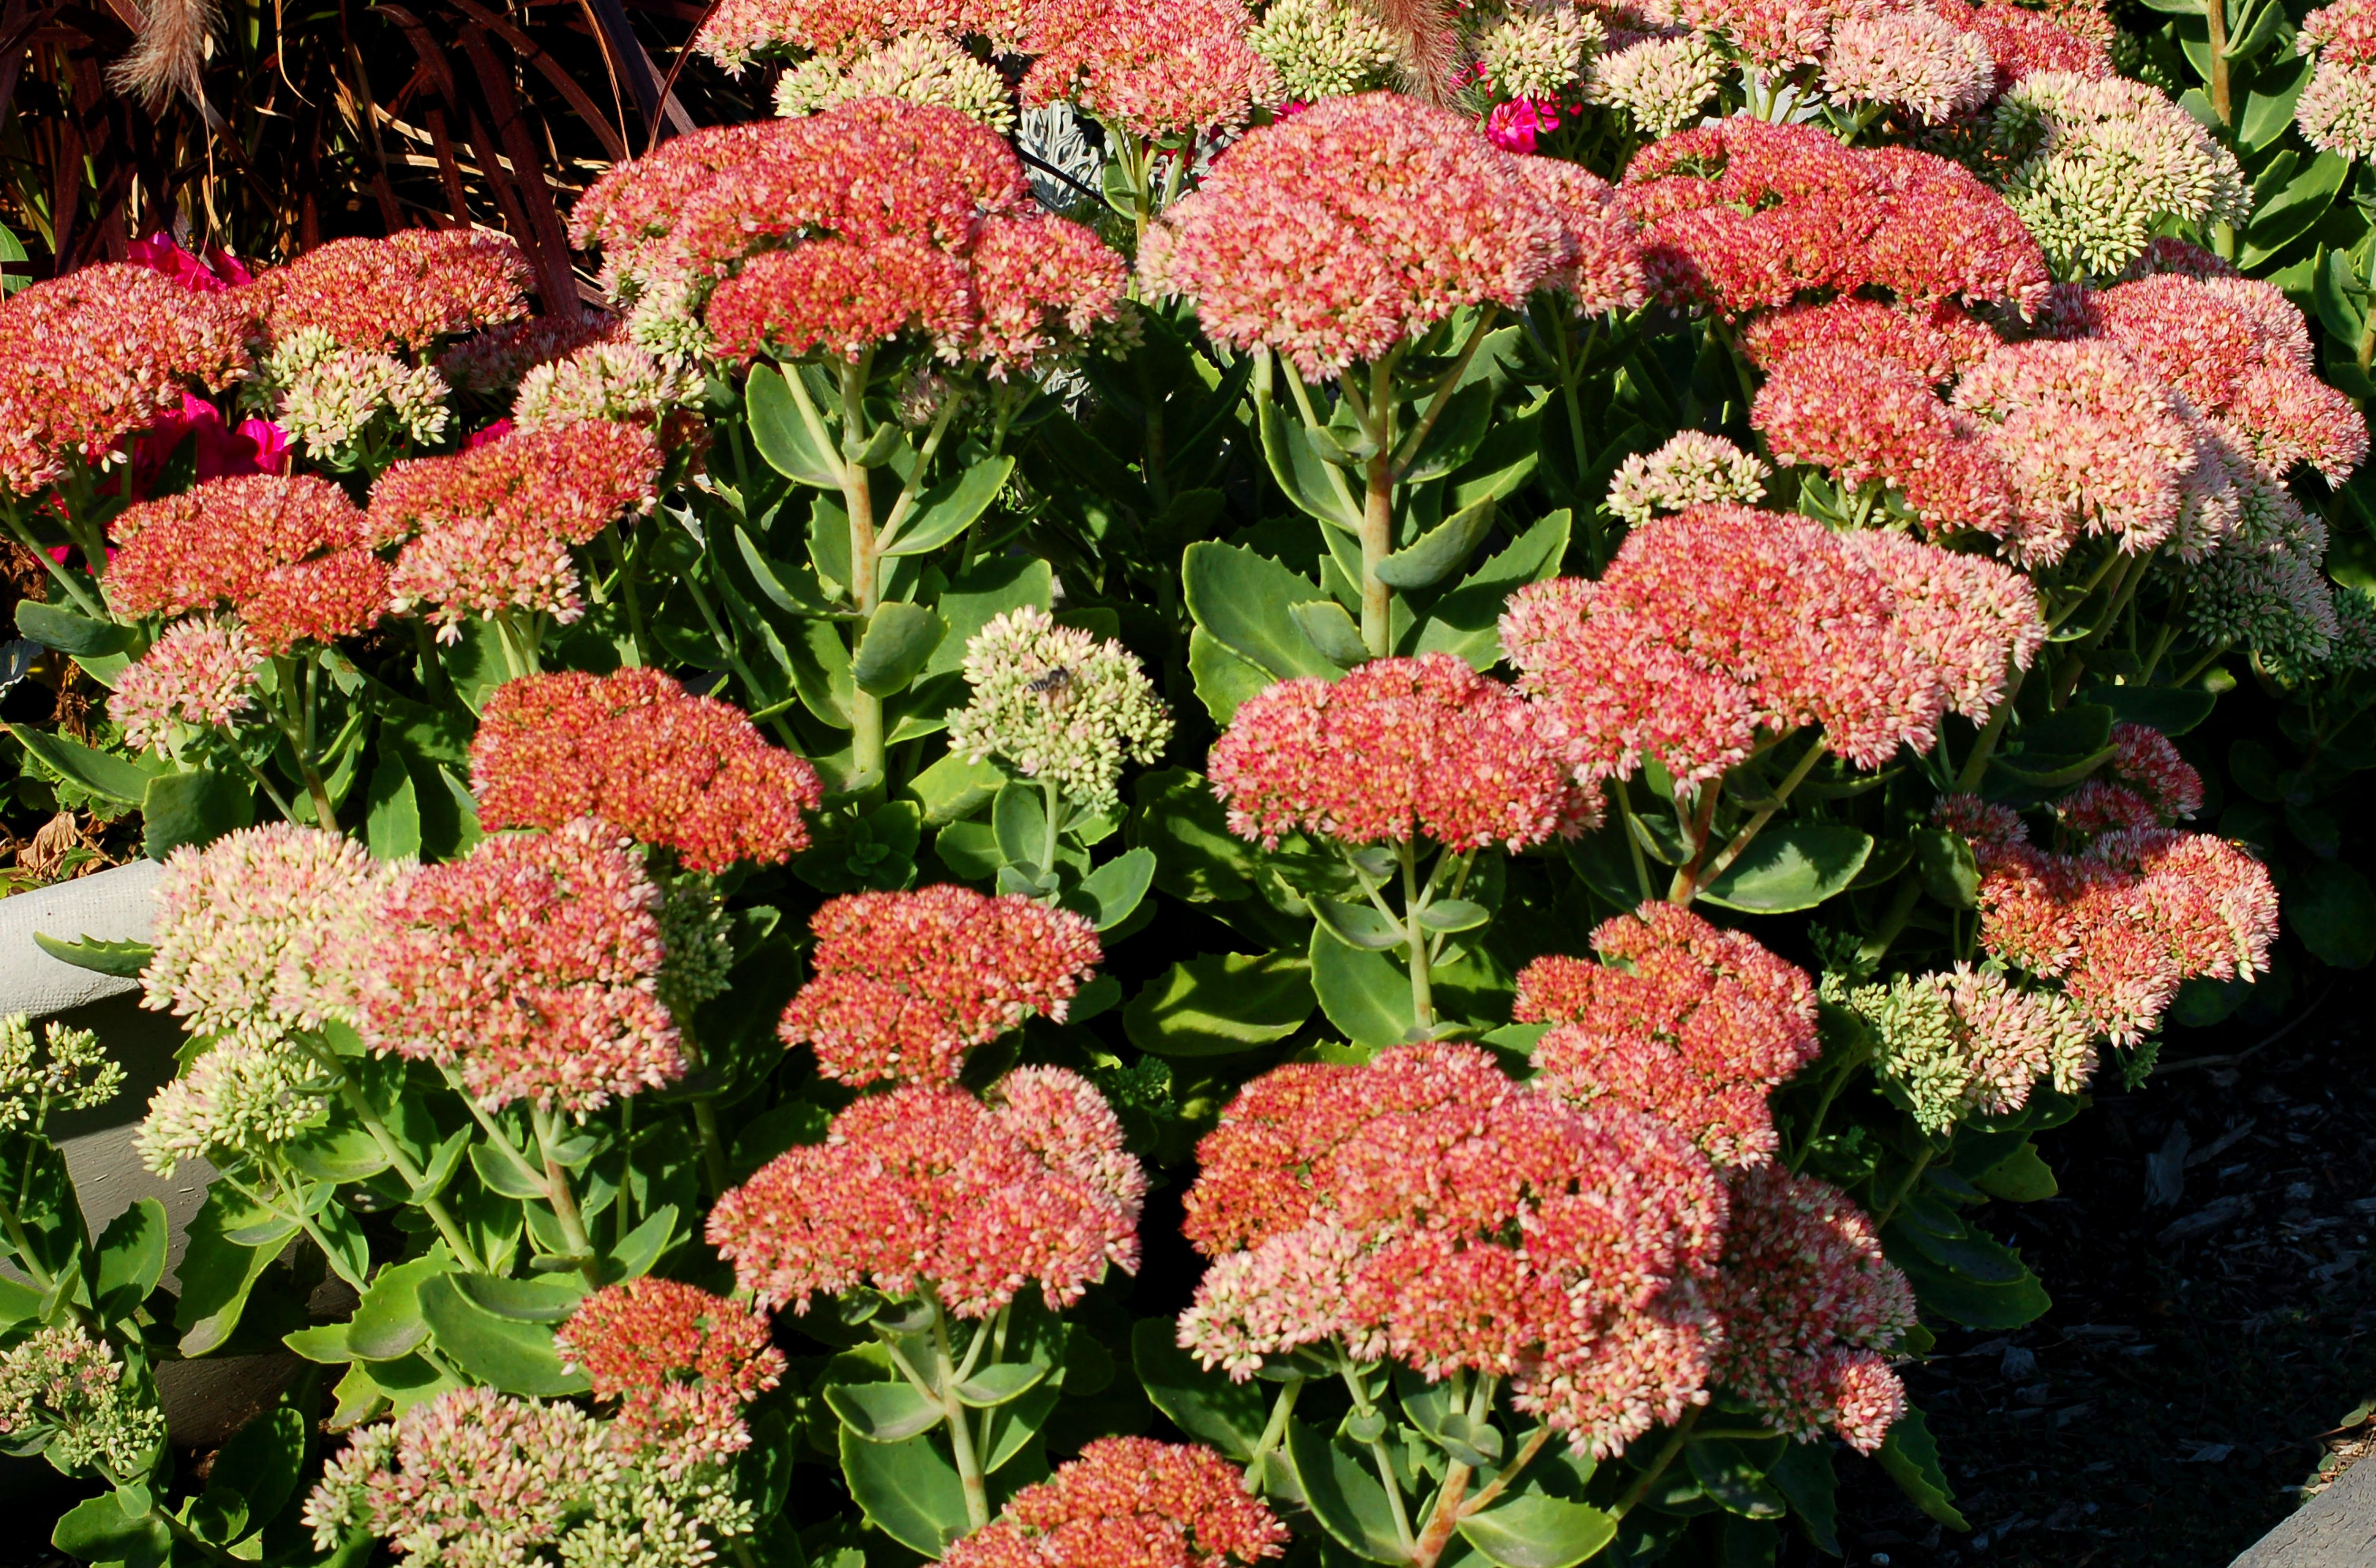 Autumn joy stonecrop flowers sedum plants for fall for Low maintenance fall flowers